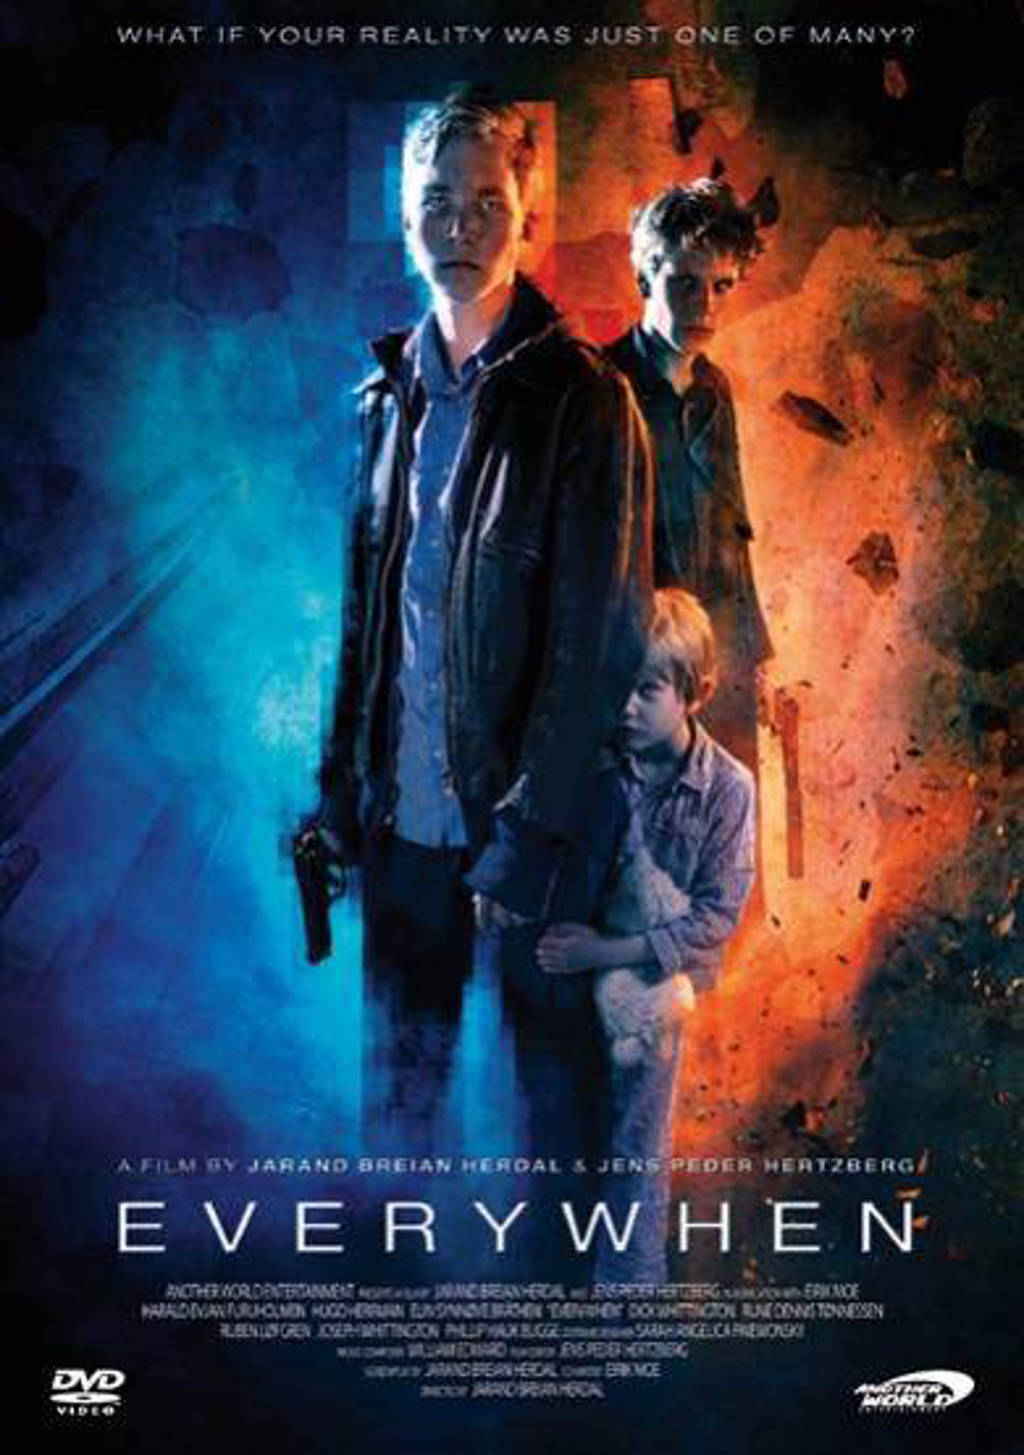 Everywhen (DVD)